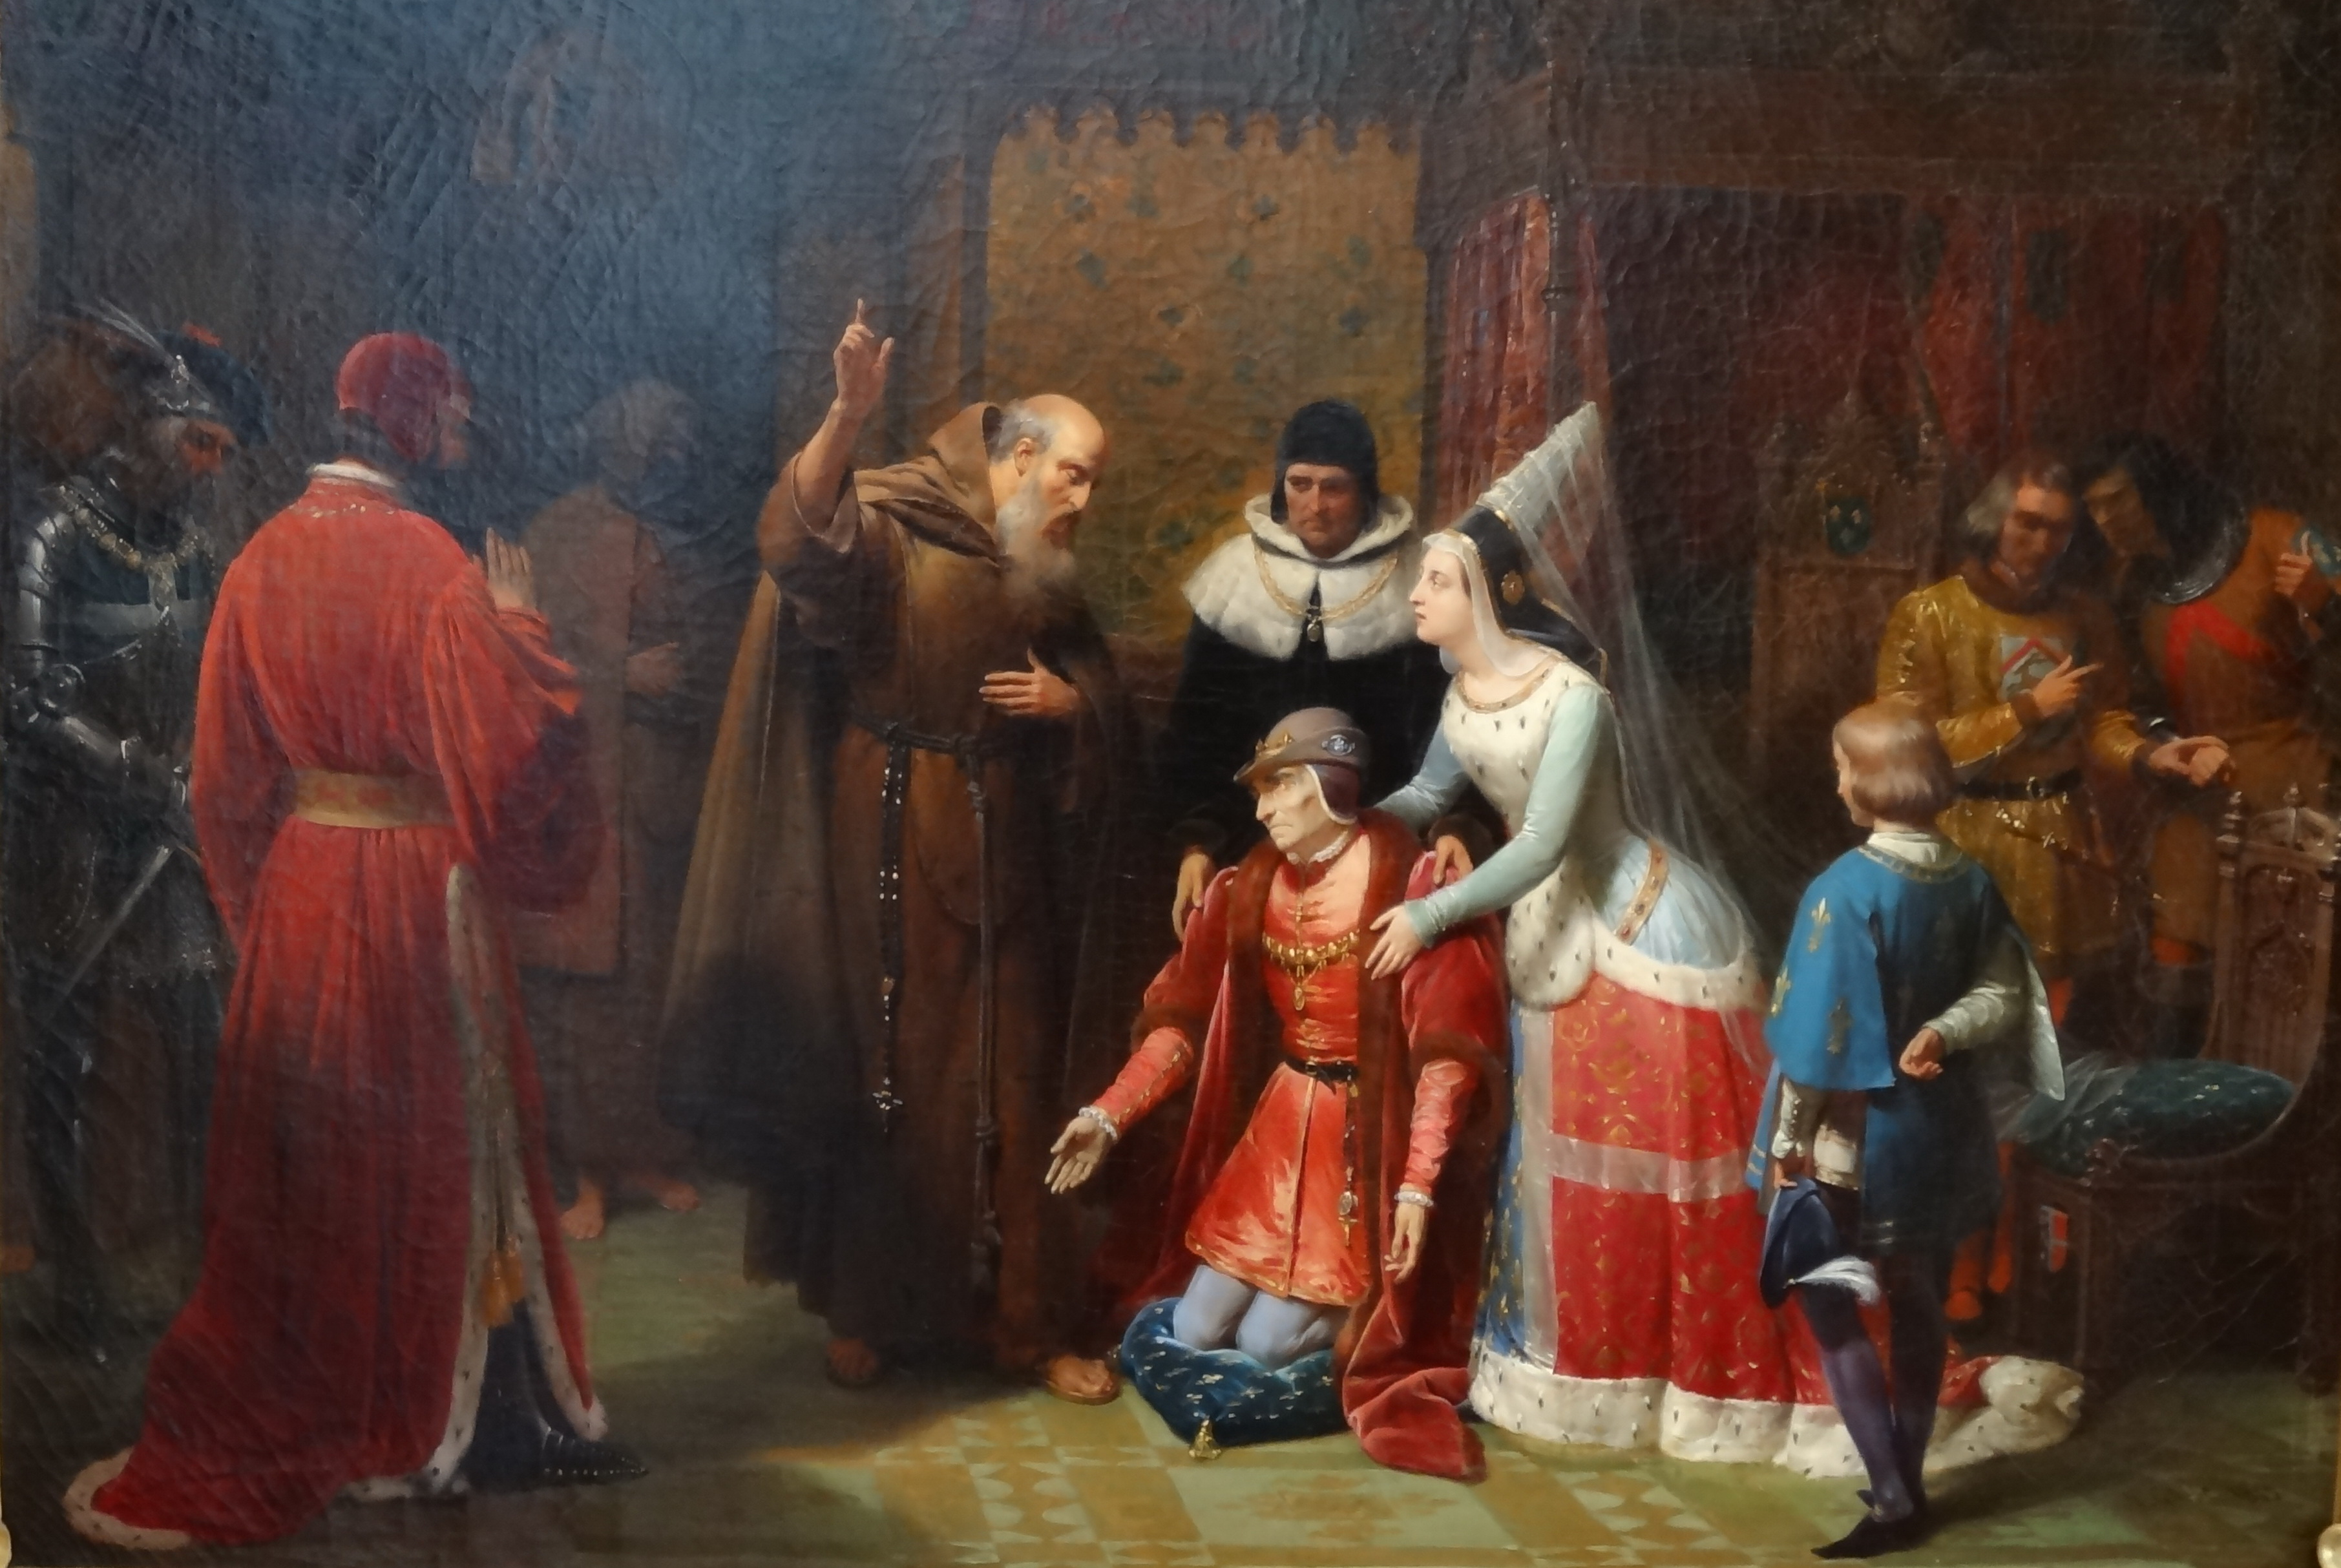 a brief summary of new monarchs henry viii and isabella i and ferdinad ii and louis xi New monarchs essay examples 1 total result a brief summary of new monarchs henry viii and isabella i and ferdinad ii and louis xi 343 words 1 page.